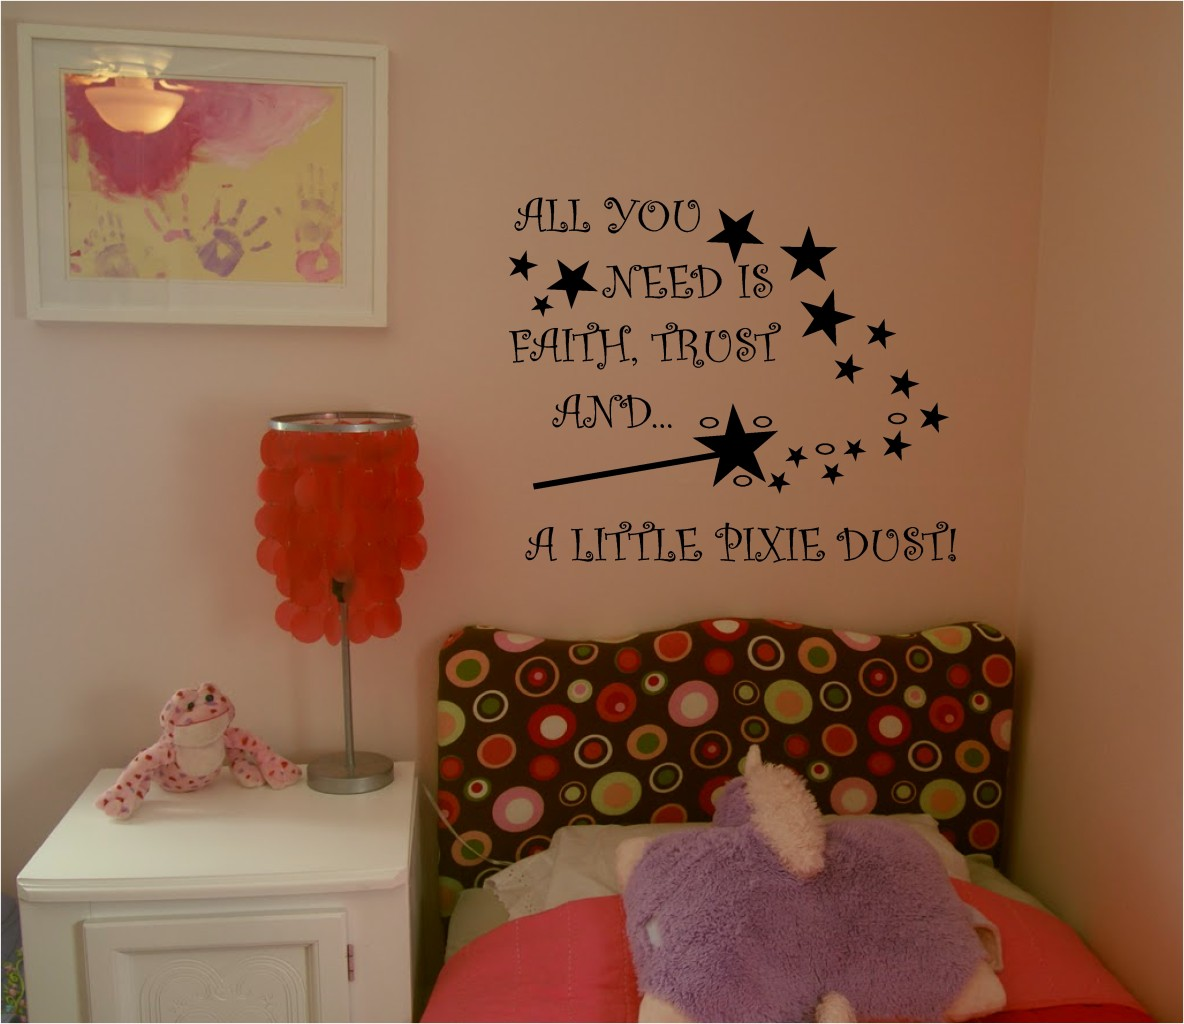 Pixie Dust Girly Art 550mm X 450mm Wall Quote Childrens Bedroom Playroom Decal Ebay